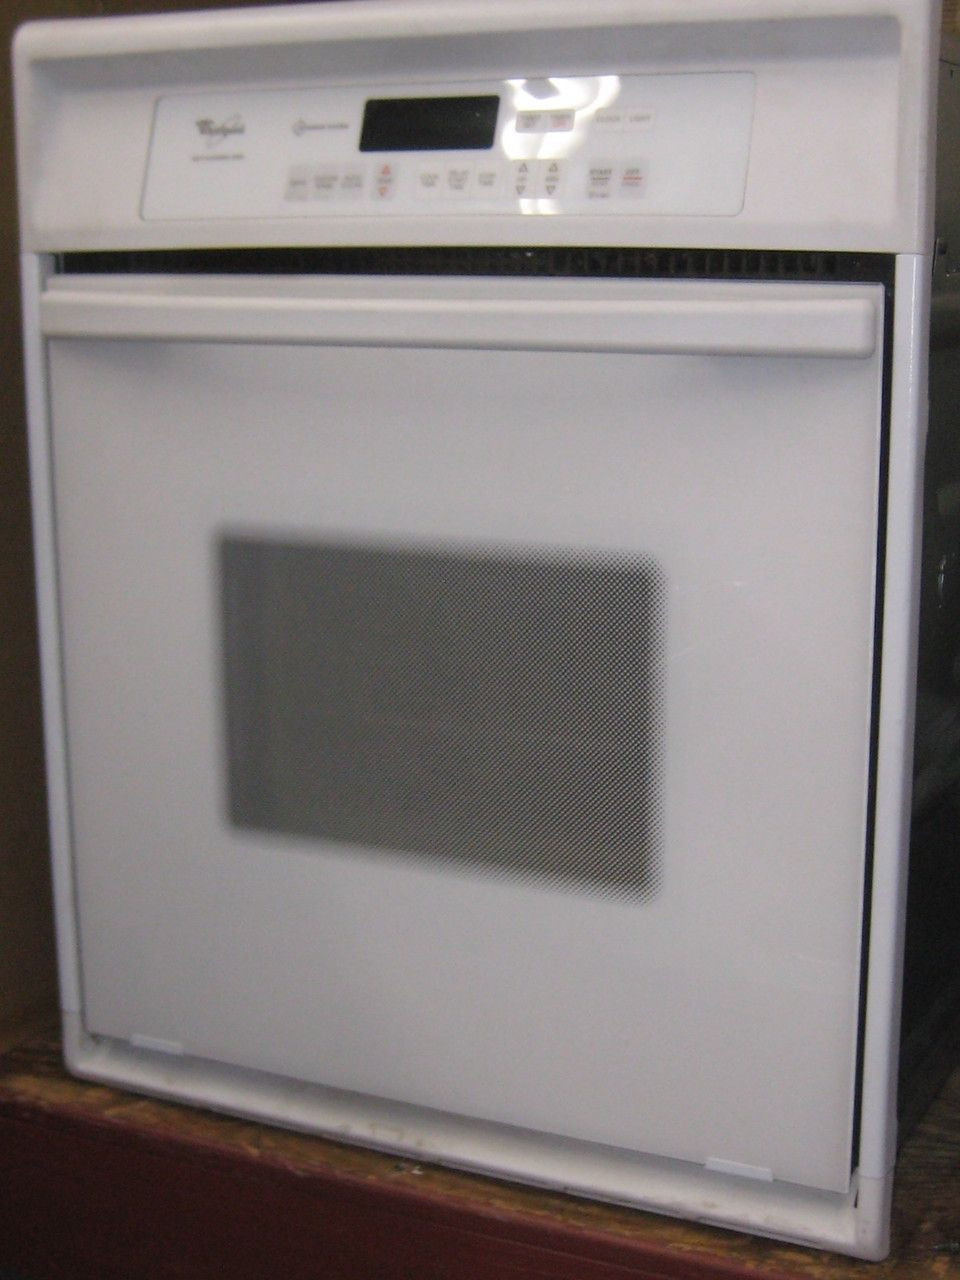 Appliance City Whirlpool 24 Inch Wall Oven Accubake System